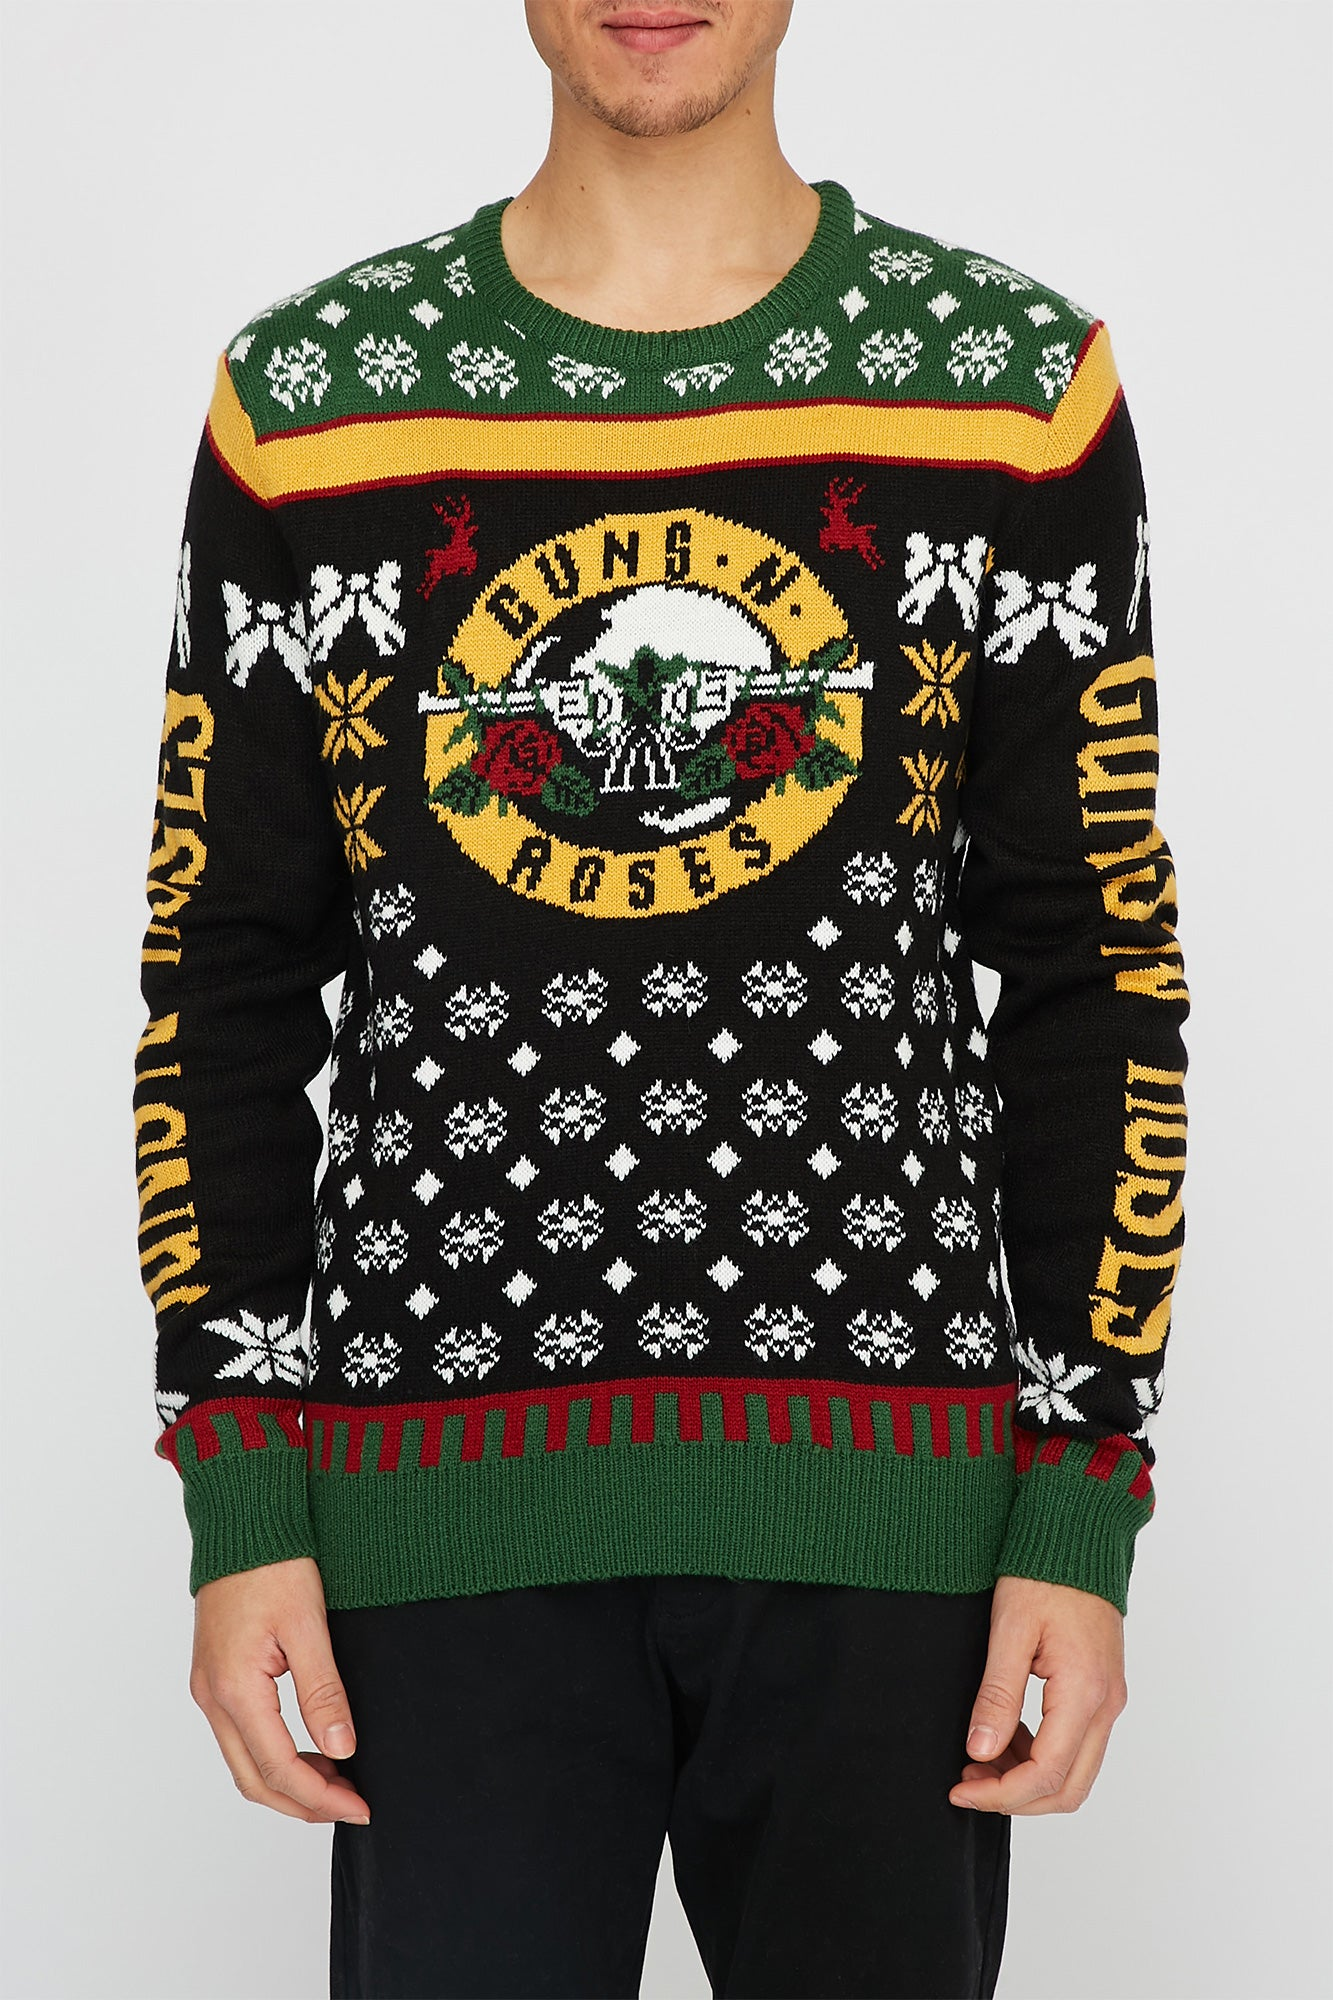 Mens Guns N Roses Ugly Christmas Sweater West49